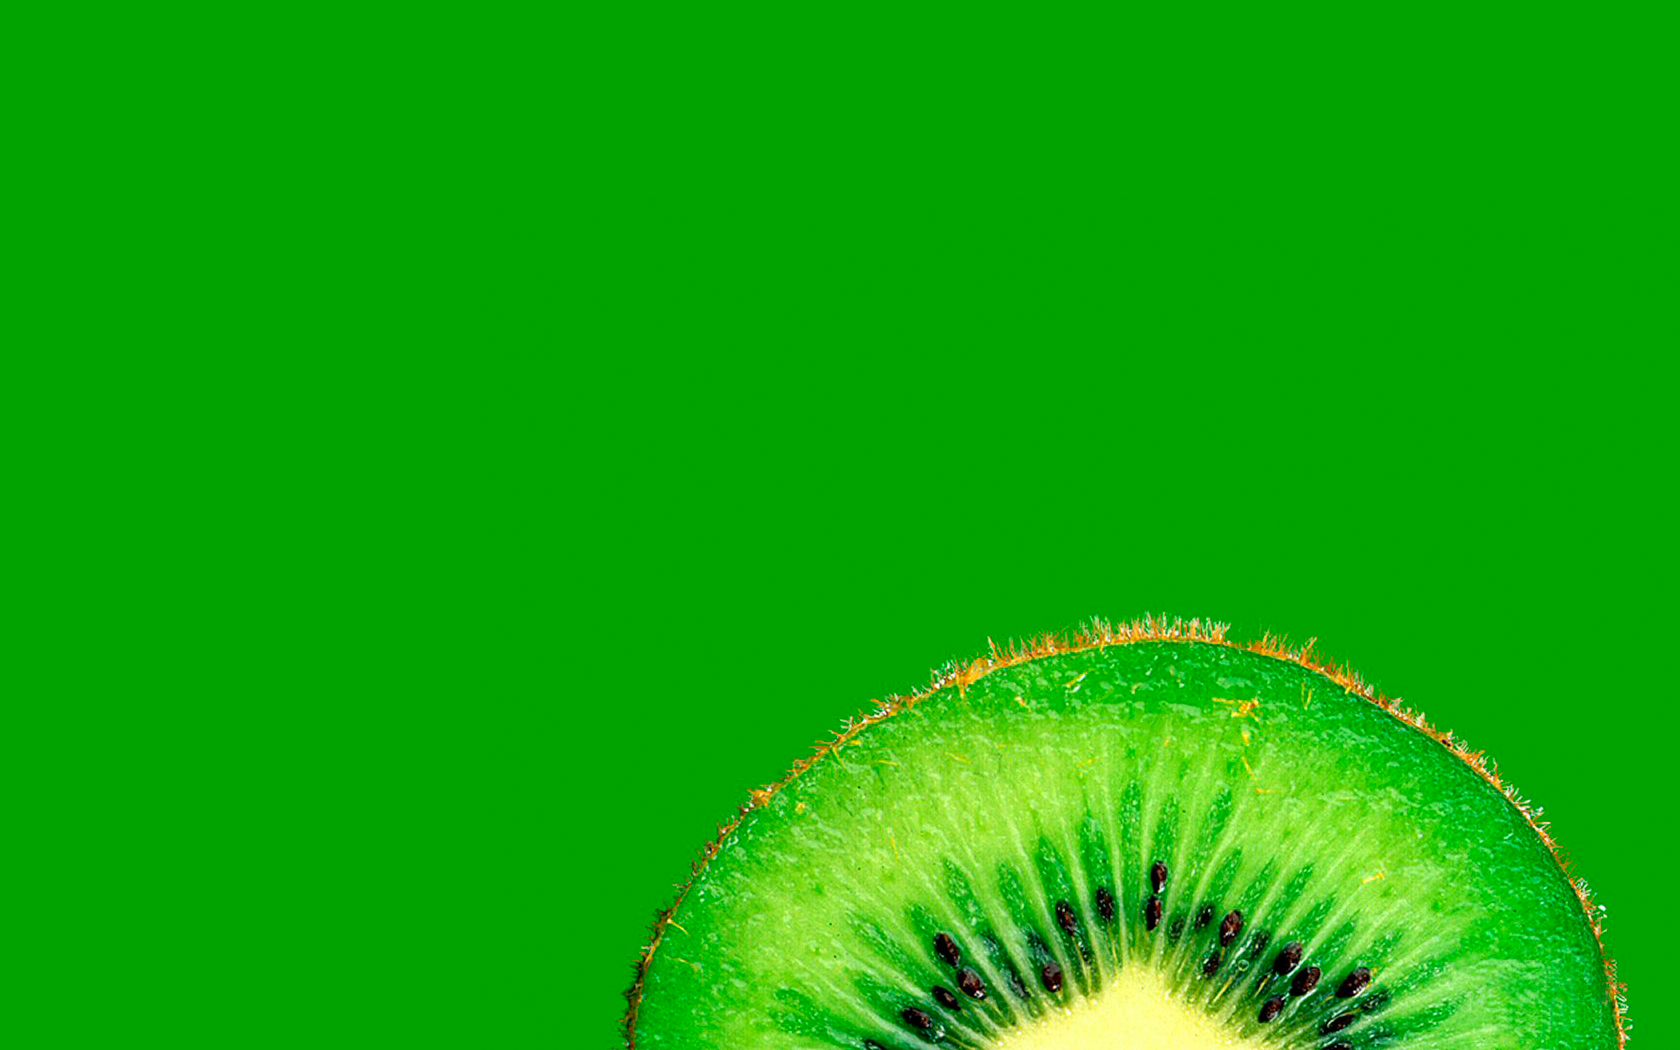 Kiwi | Kiwi Images, Pictures, Wallpapers on BsnSCB